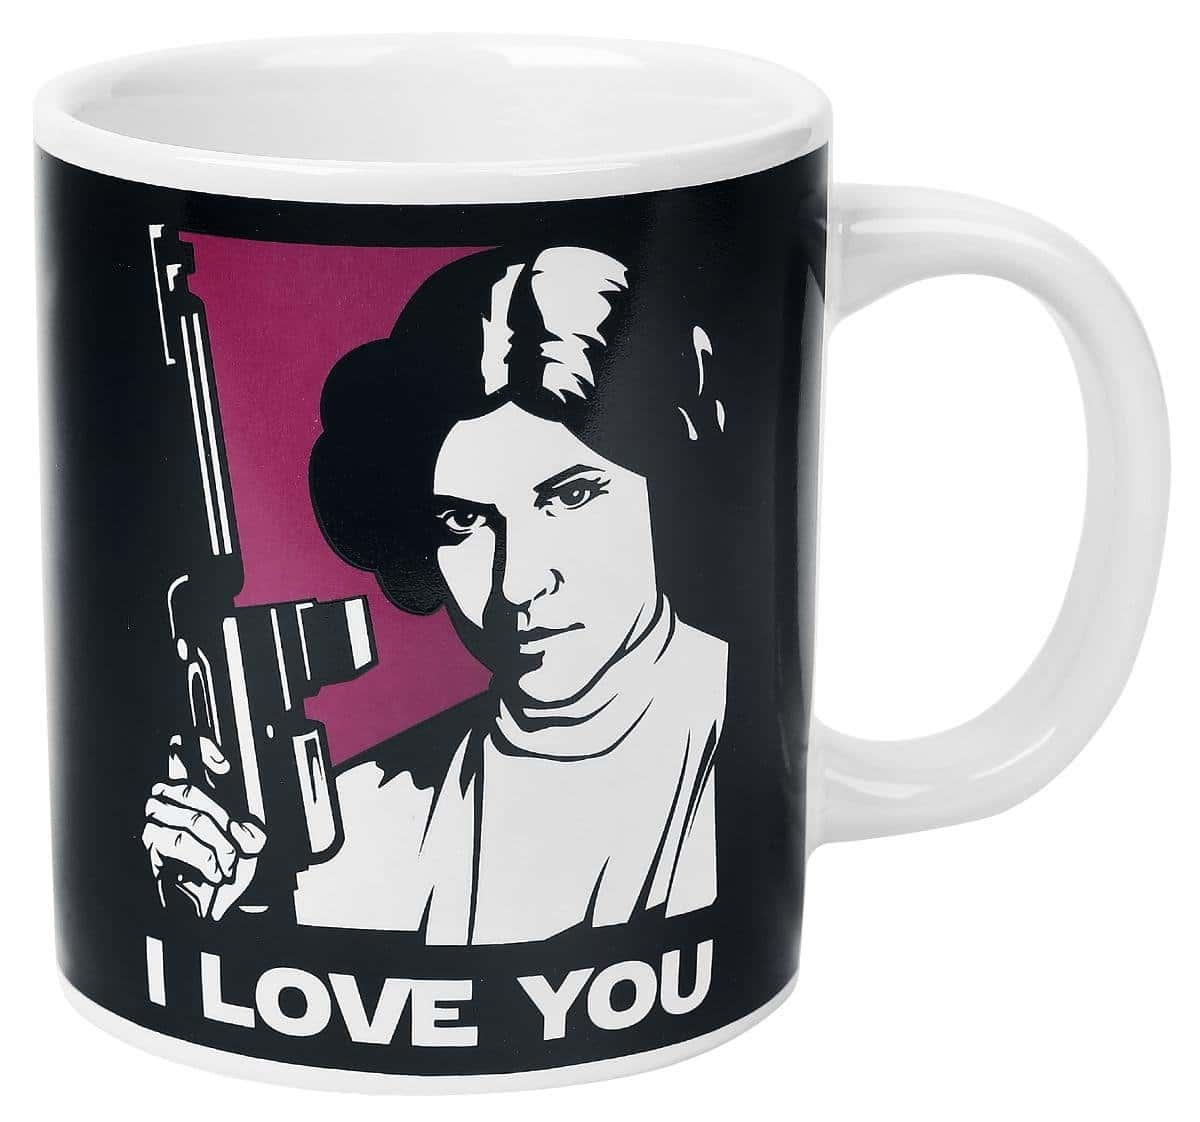 mug star wars i love you objet saint valentin mr etrange. Black Bedroom Furniture Sets. Home Design Ideas